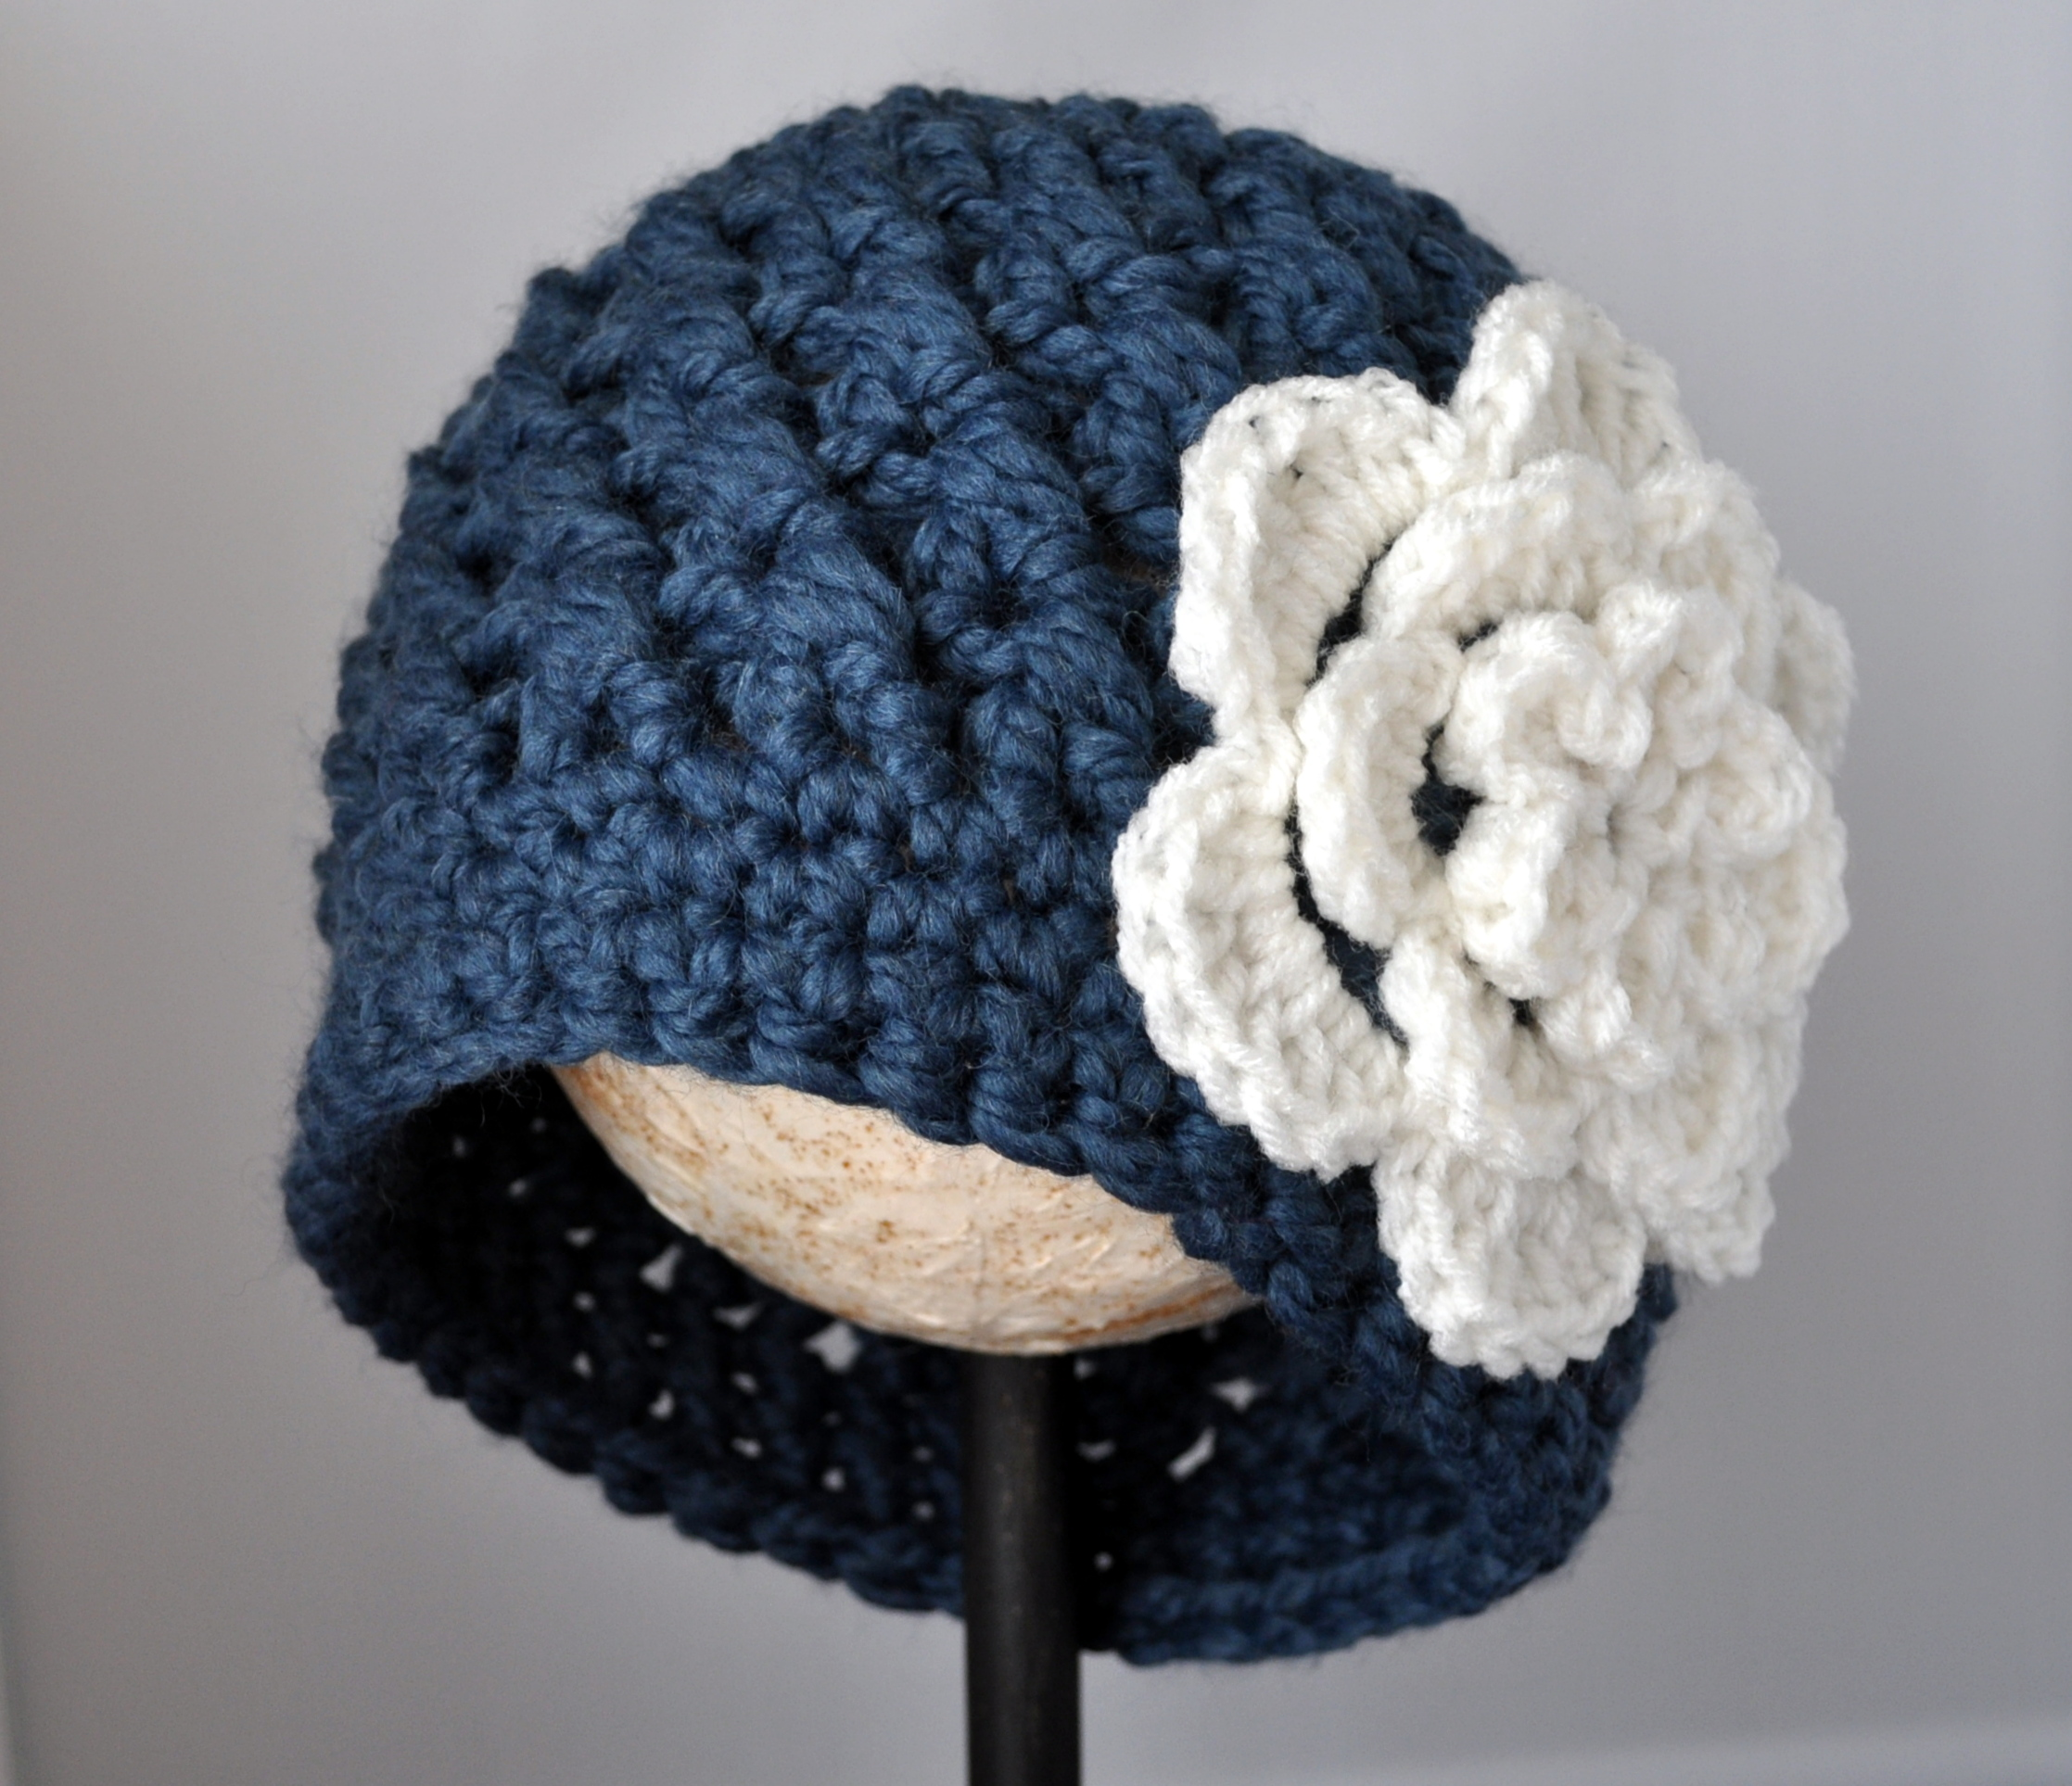 Crochet Chunky Owl Hat Pattern : Crochet Chunky Flowered Cloche Pattern Classy Crochet